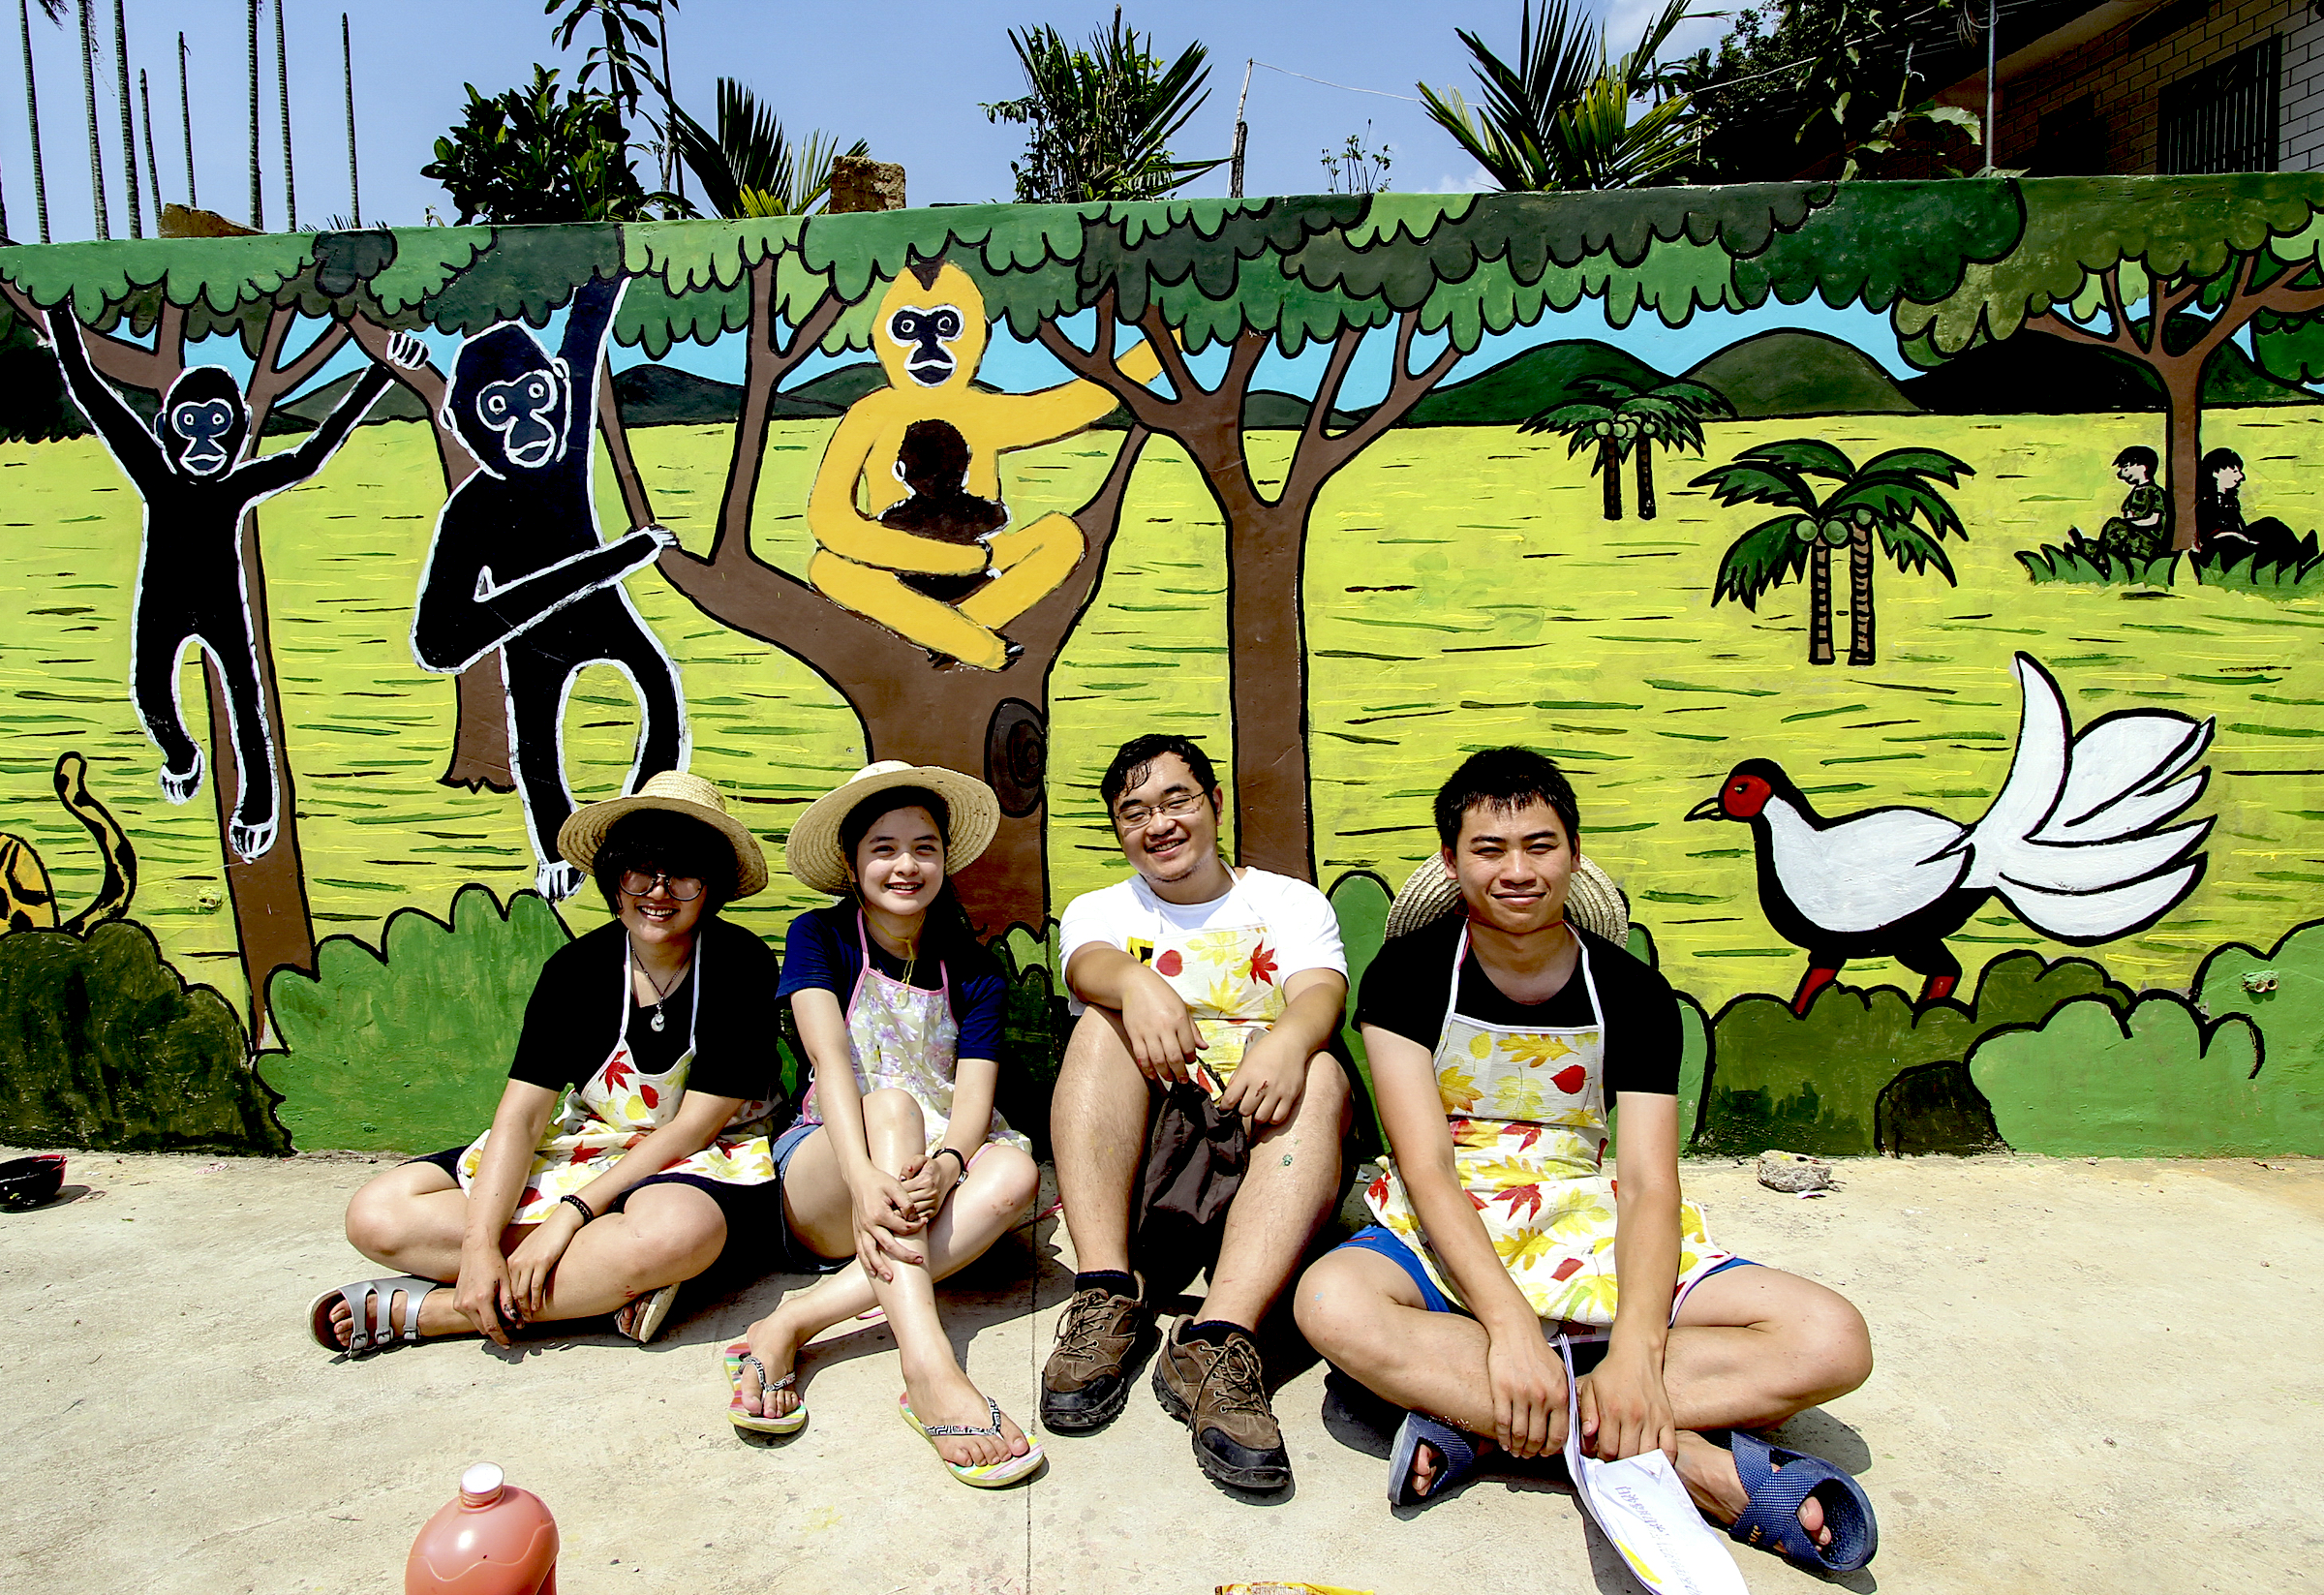 Students sit in front of a new mural of Hainan gibbons in the village of Miao Cun. The mural was painted as part of Kadoorie Farm's campaign to raise awareness about the Hainan gibbon. Photograph courtesy of Kadoorie Farm & Botanic Garden